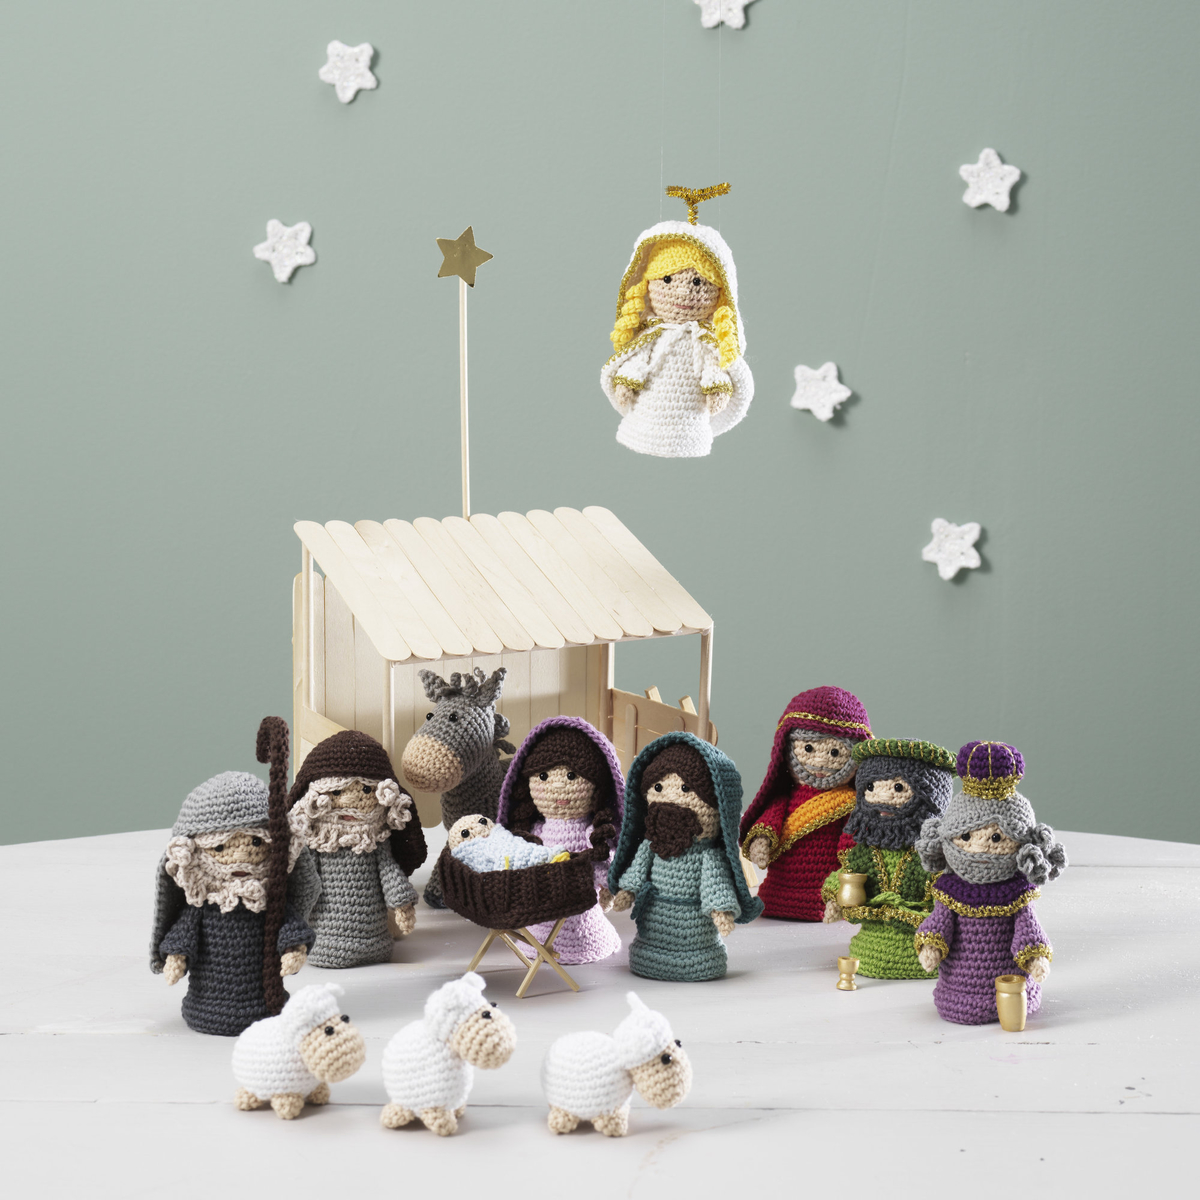 Crochet a nativity scene